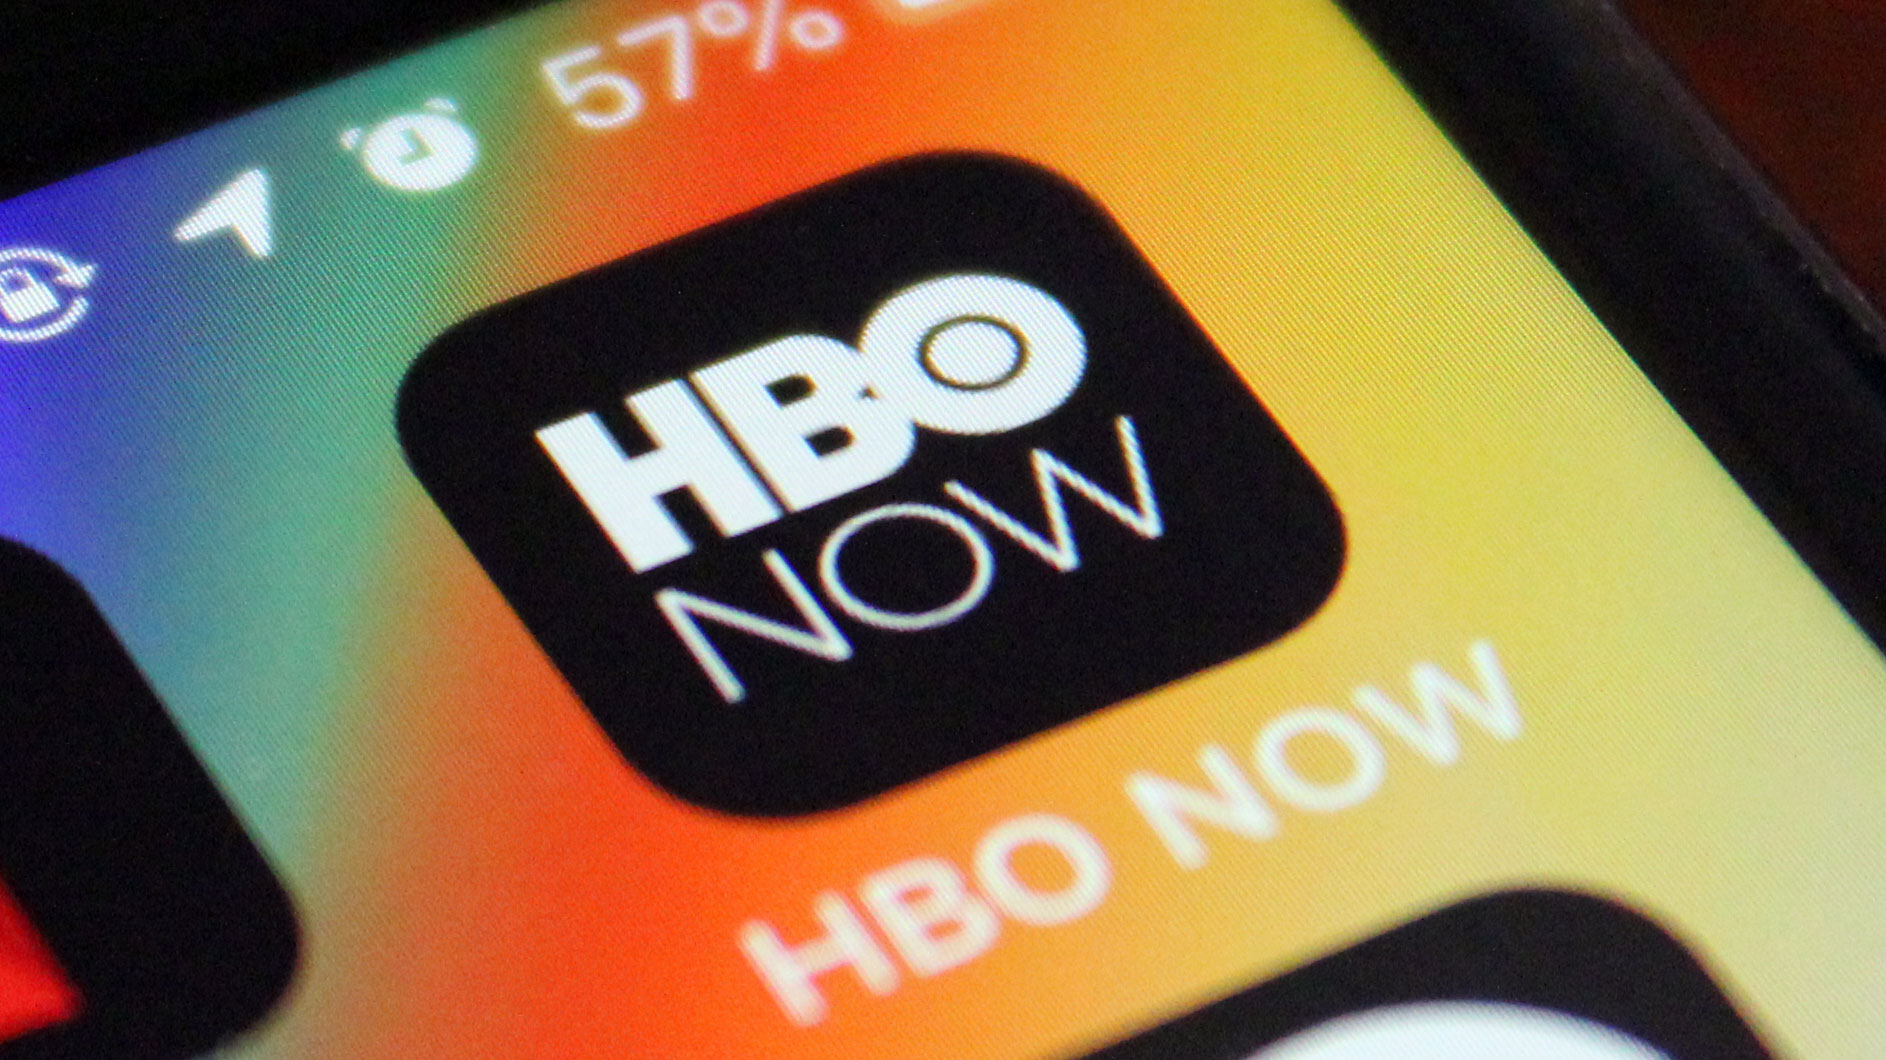 HBO offering 500 hours of programming for free